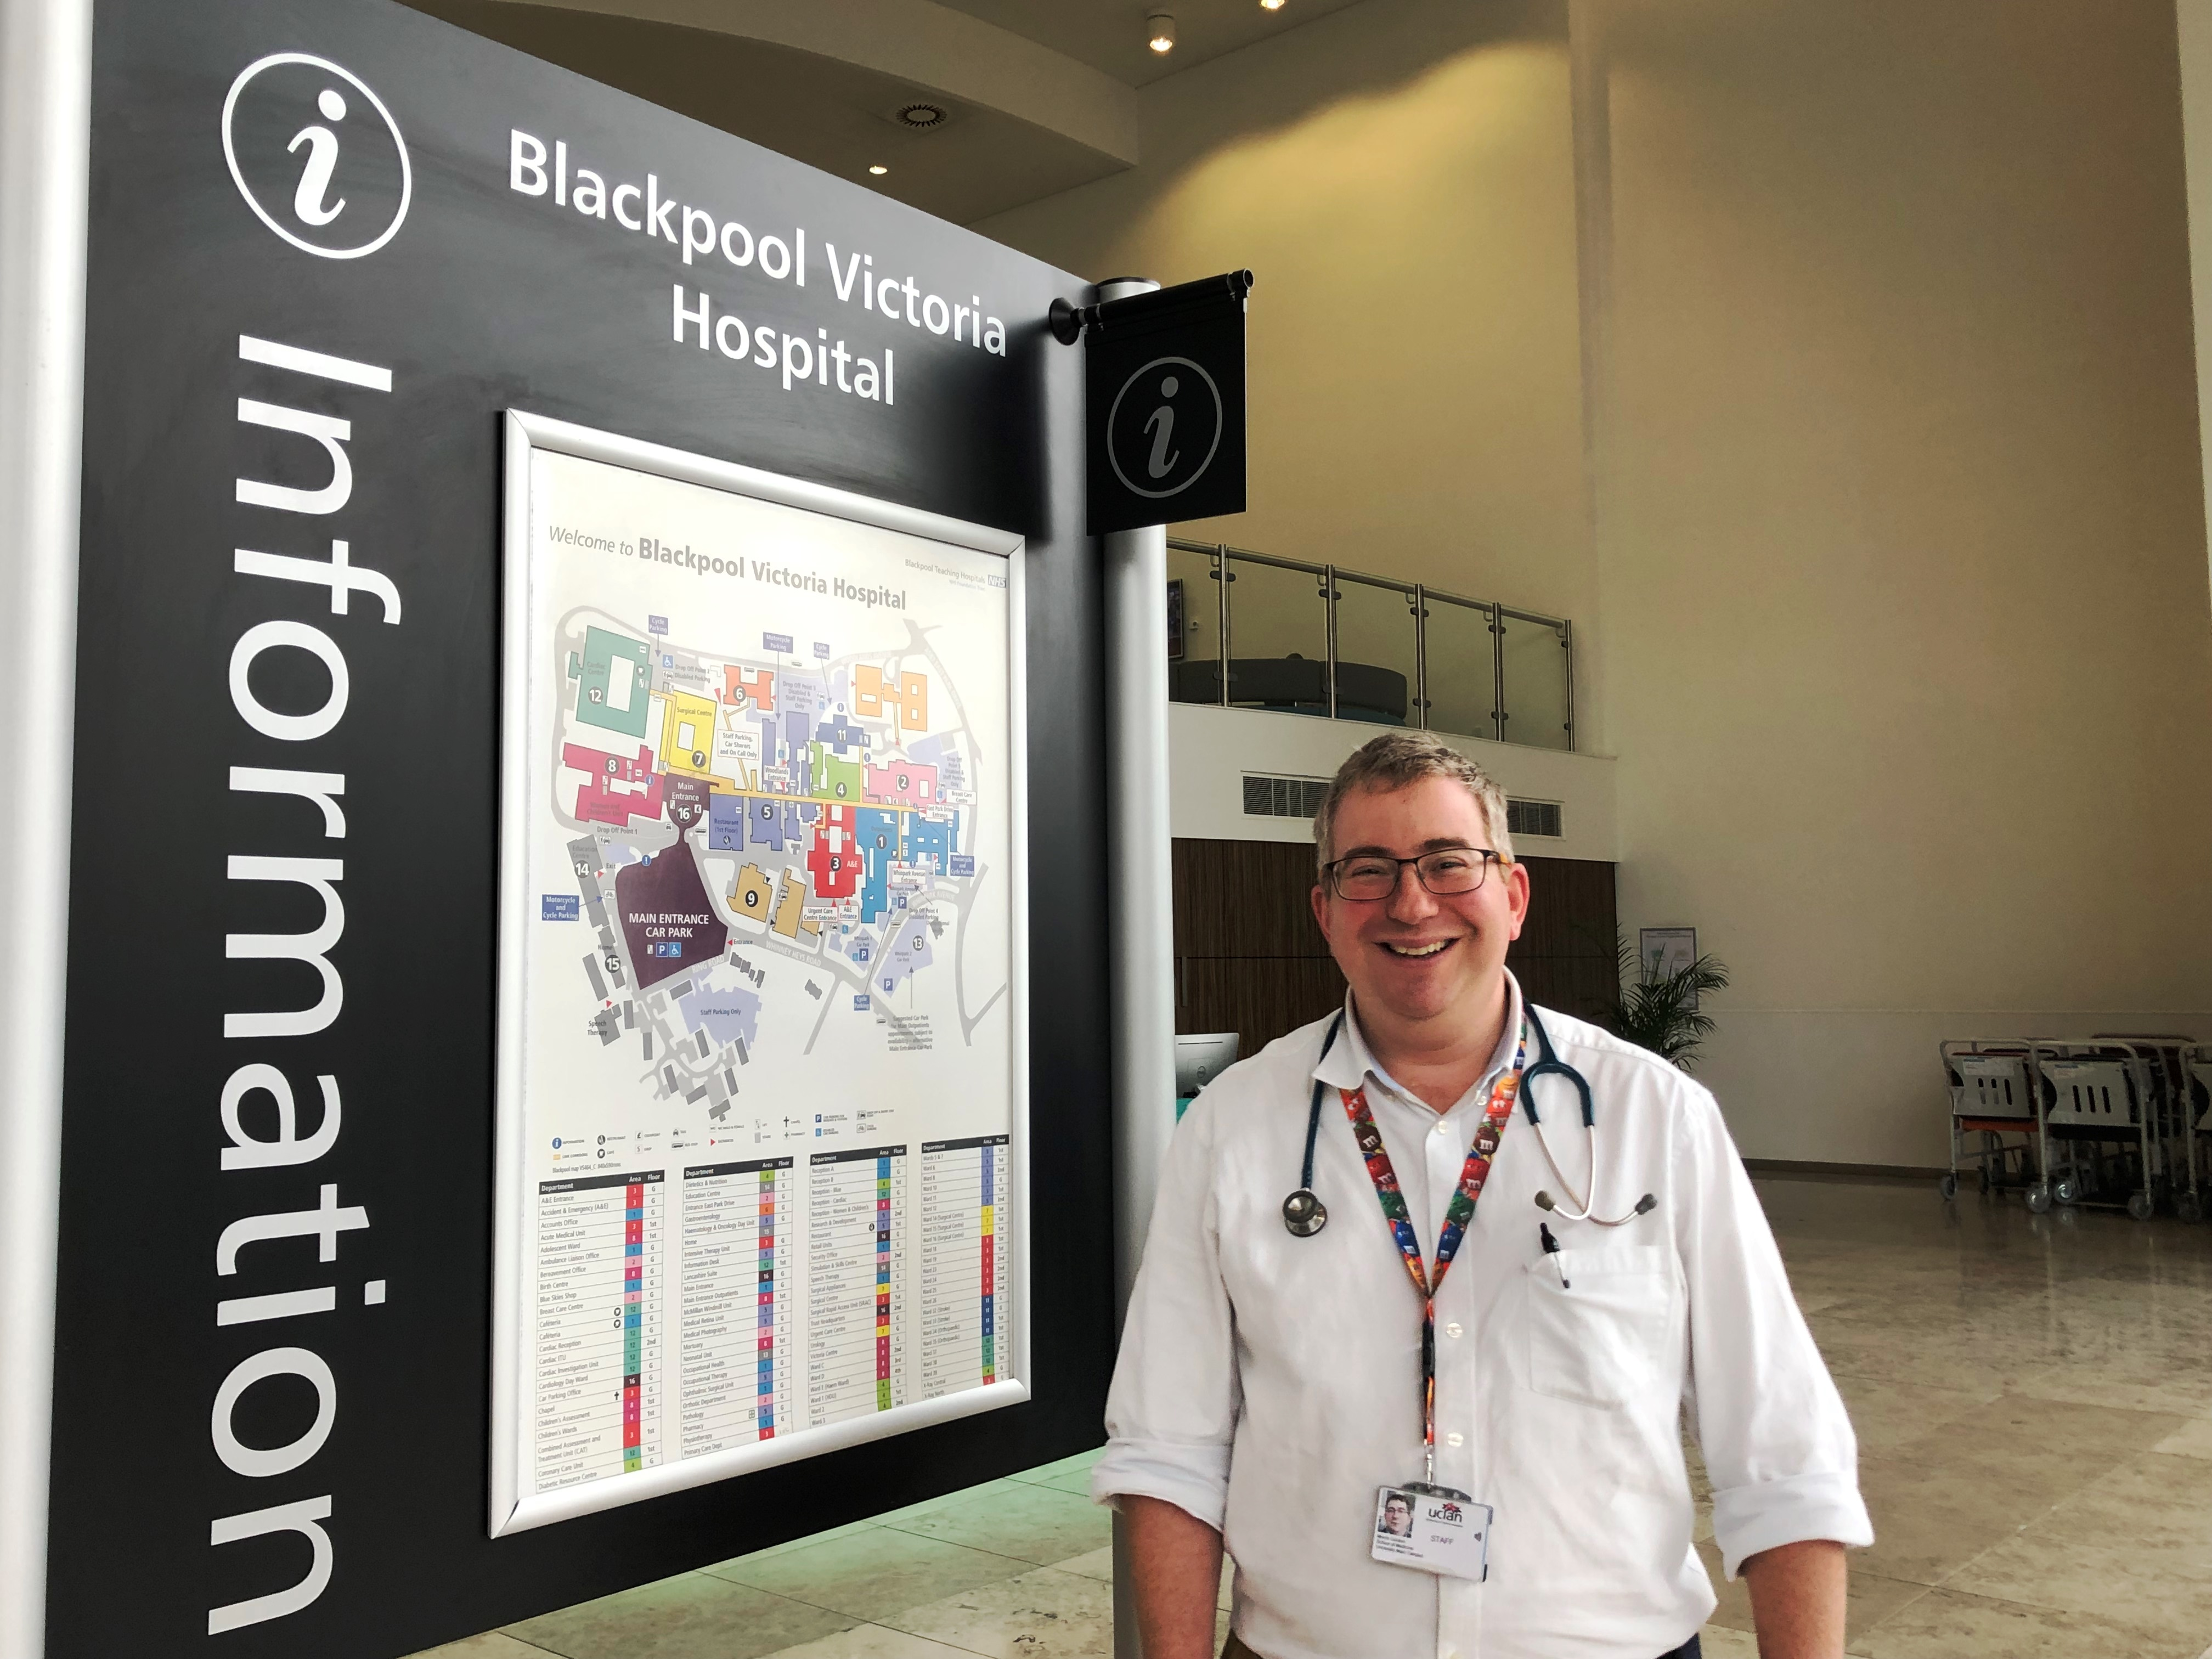 Sepsis deaths halved at Blackpool featured image